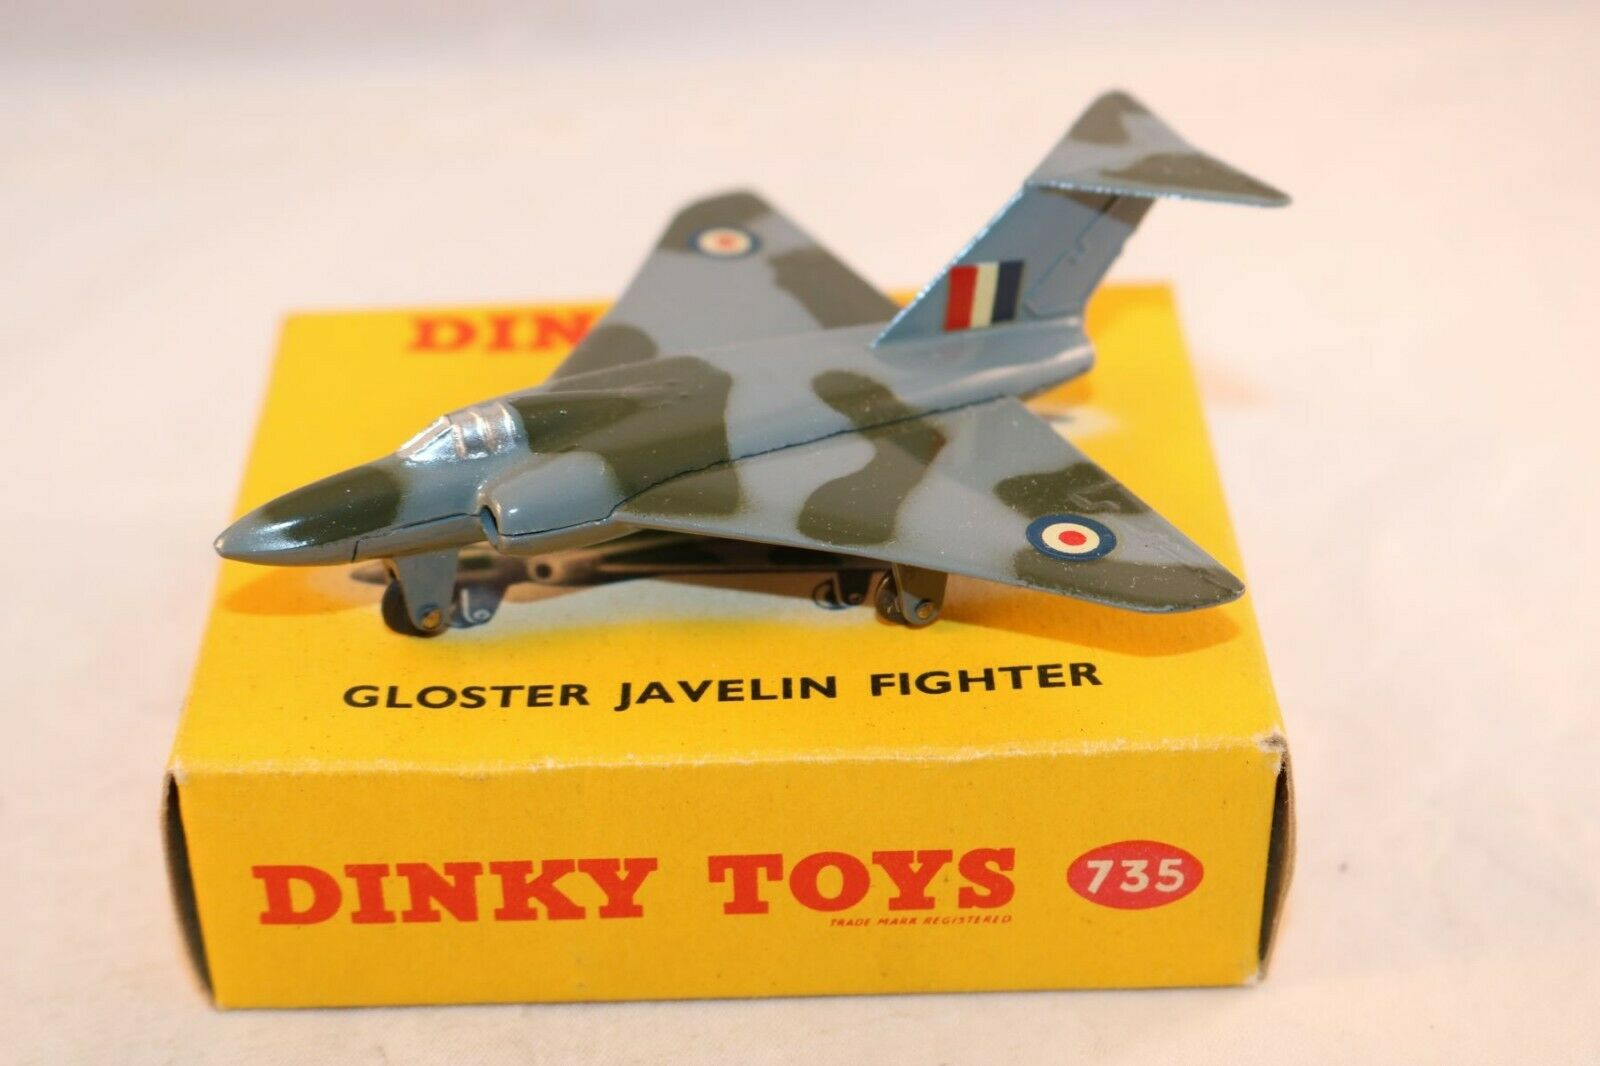 Dinky Juguetes 735 Gloster Javalin perfect mint in a perfect mint box súperb